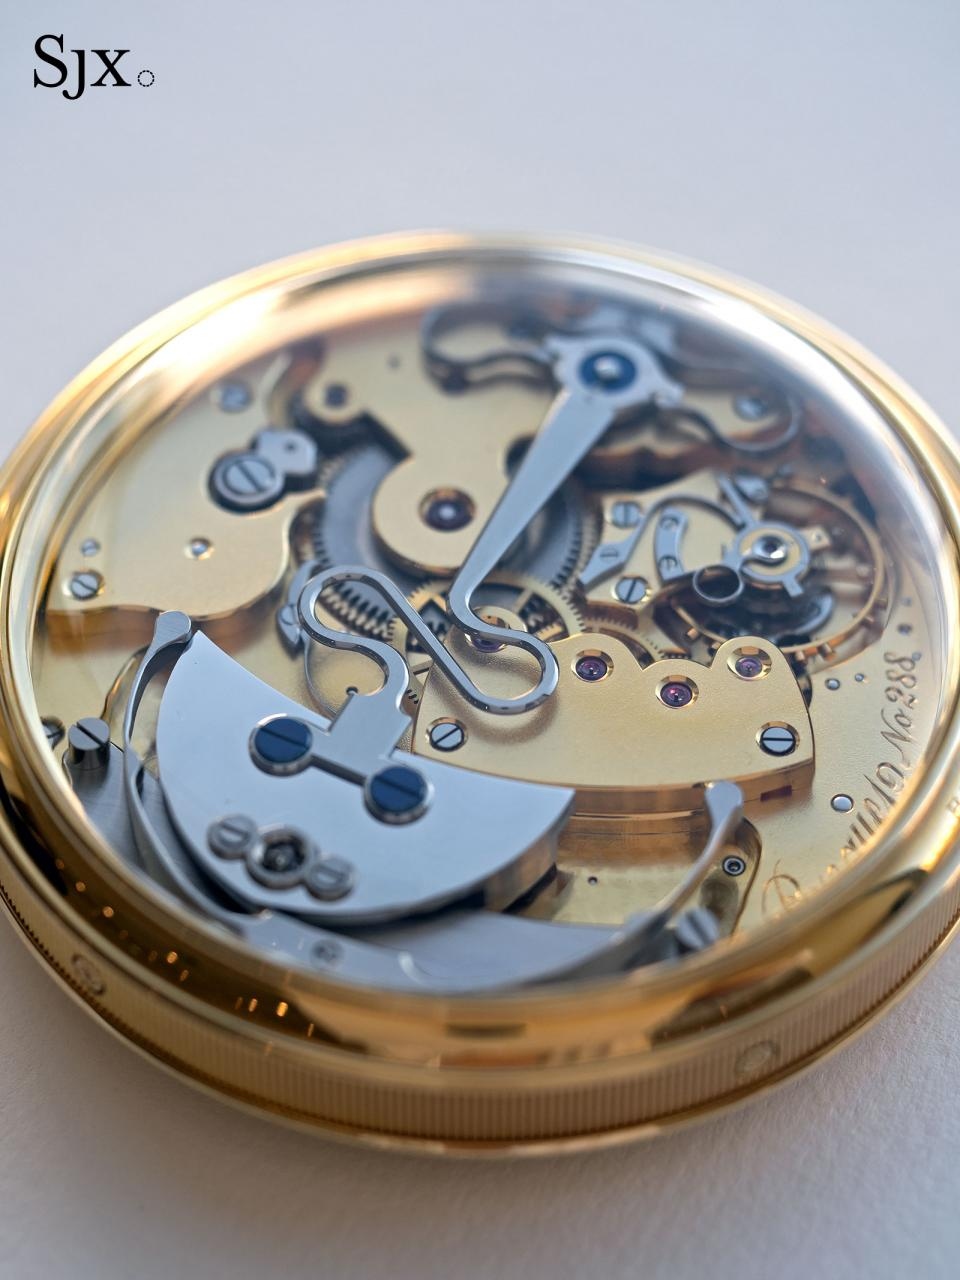 Breguet Souscription set pocket watch 10